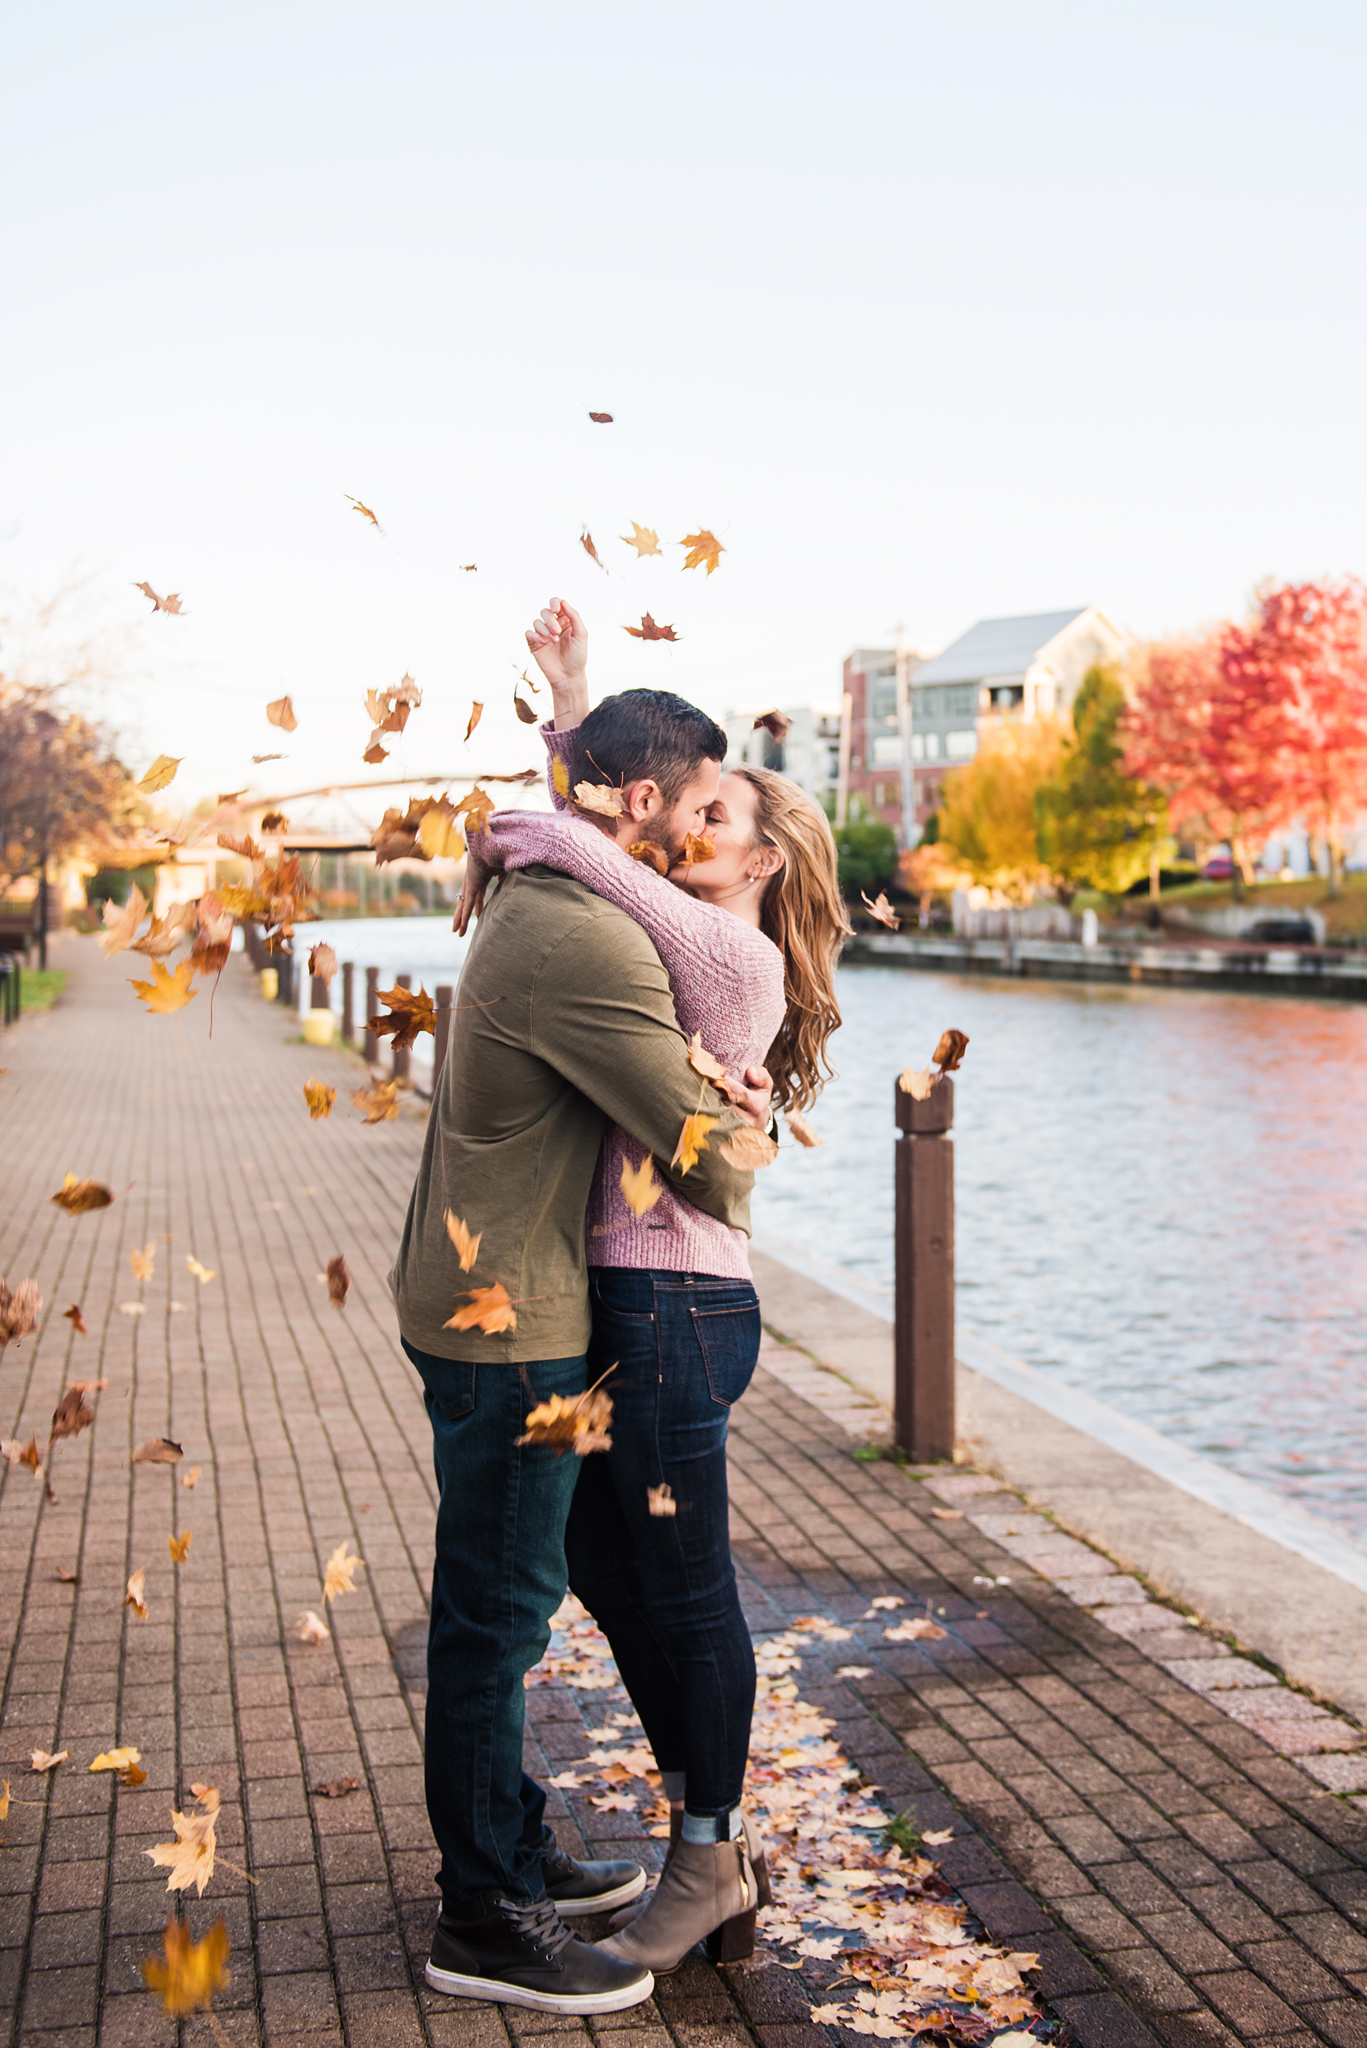 Village_of_Fairport_Rochester_Engagement_Session_JILL_STUDIO_Rochester_NY_Photographer_DSC_8672.jpg